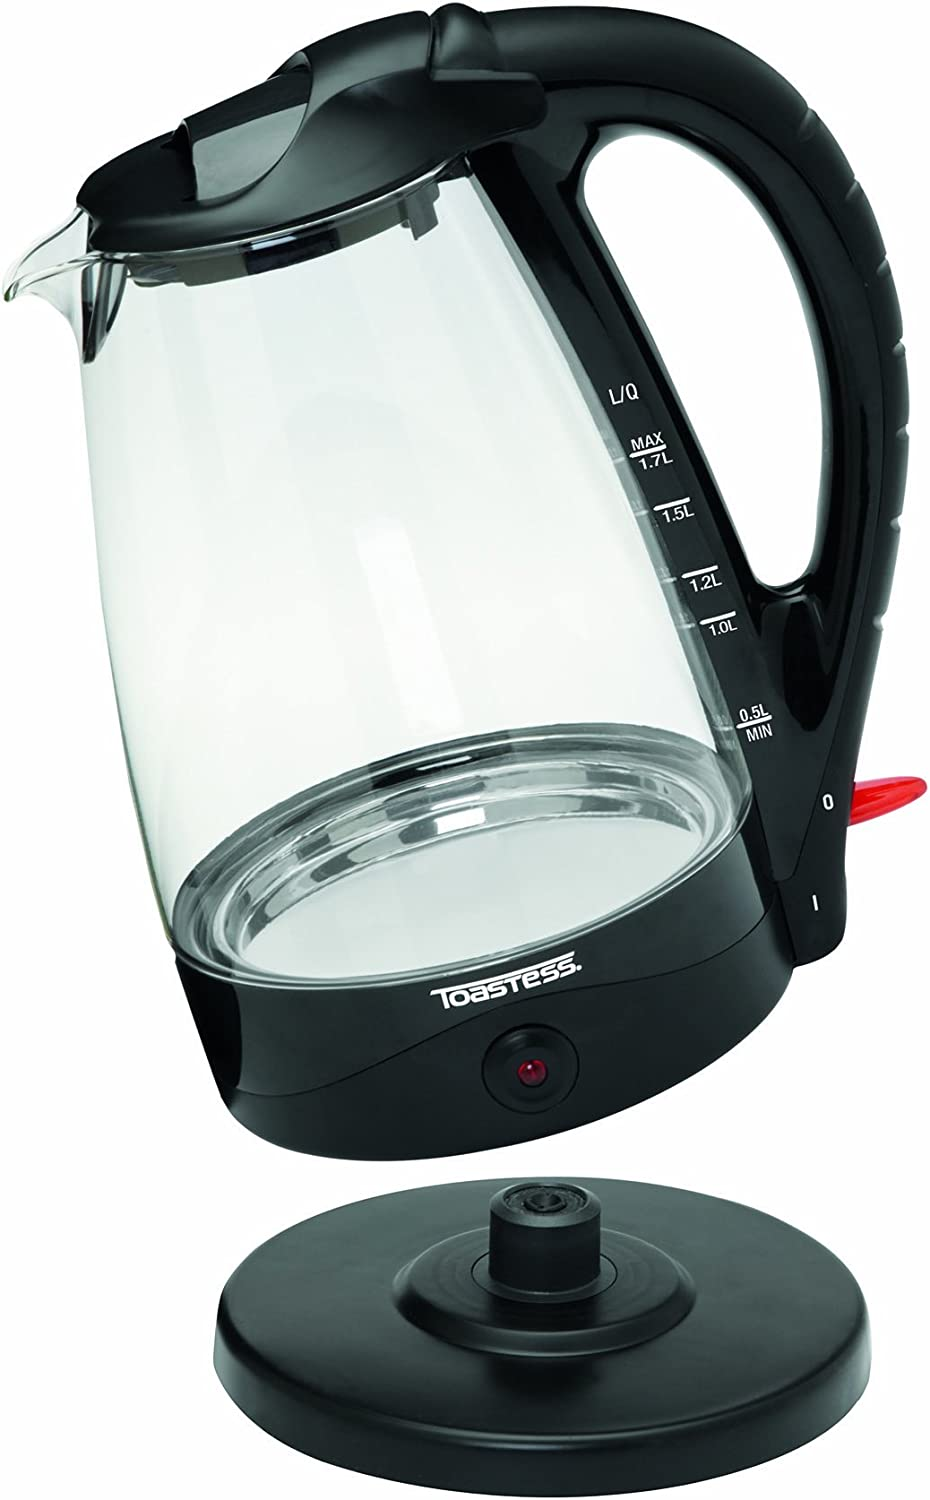 Toastess TGK486 Cordless Glass Kettle